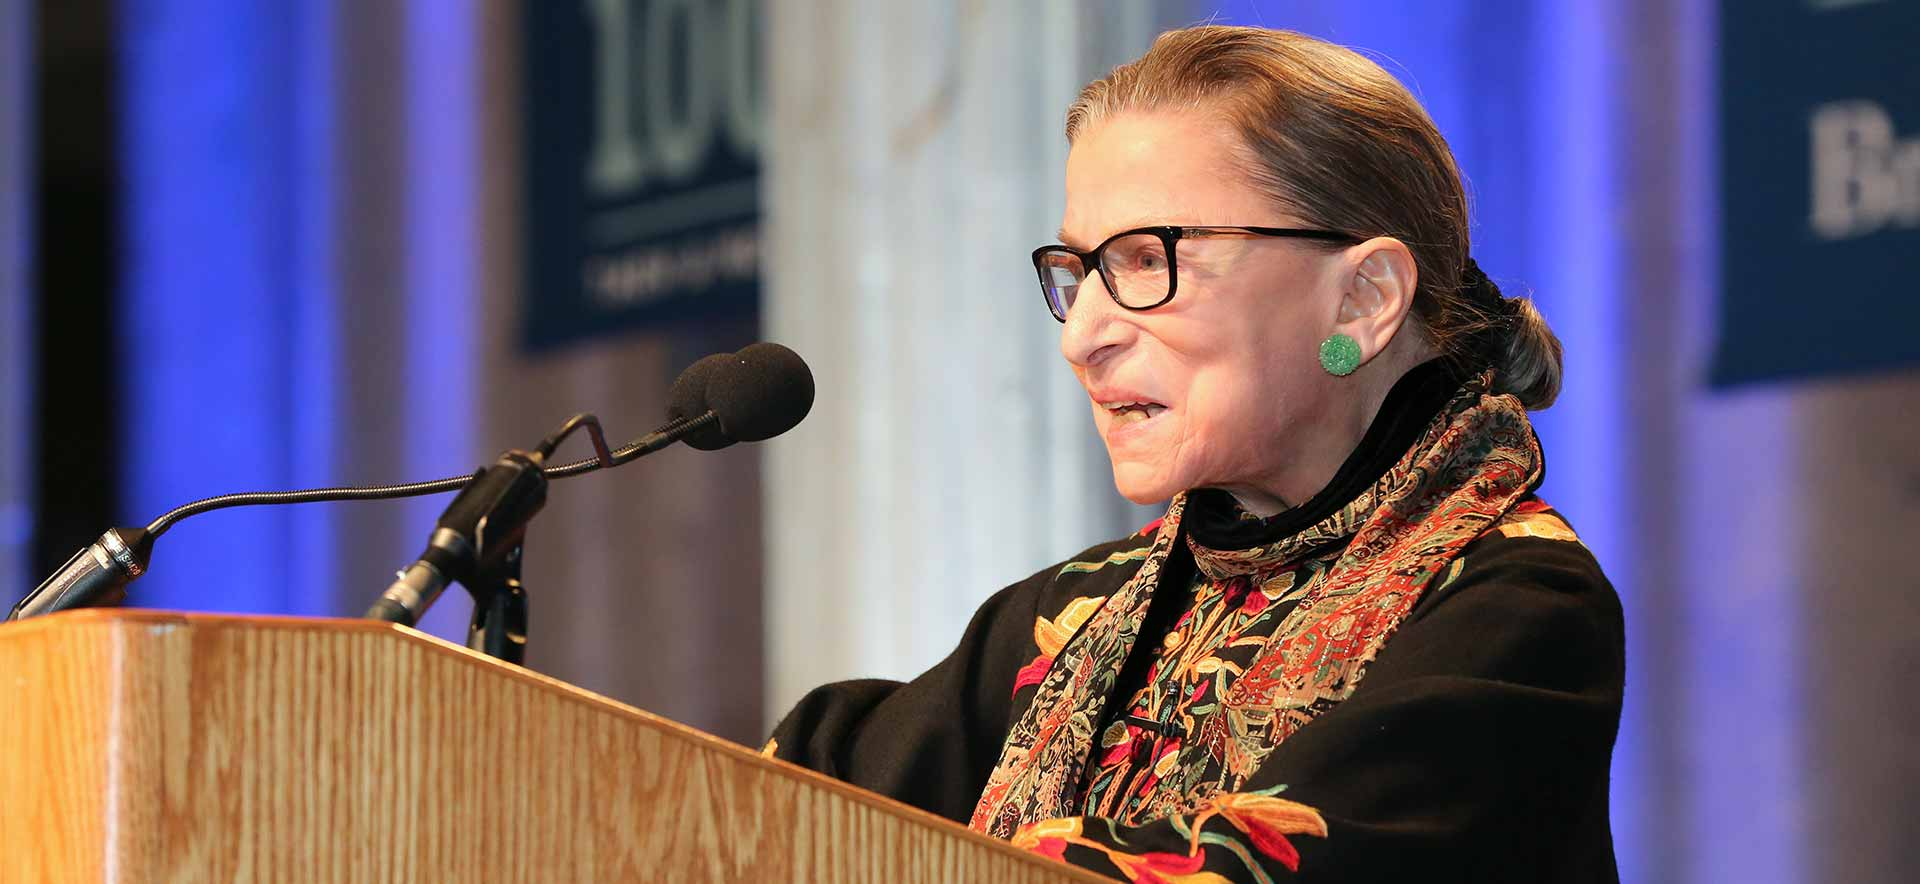 Supreme Court Justice Ruth Bader Ginsburg at a podium during her recent visit to campus